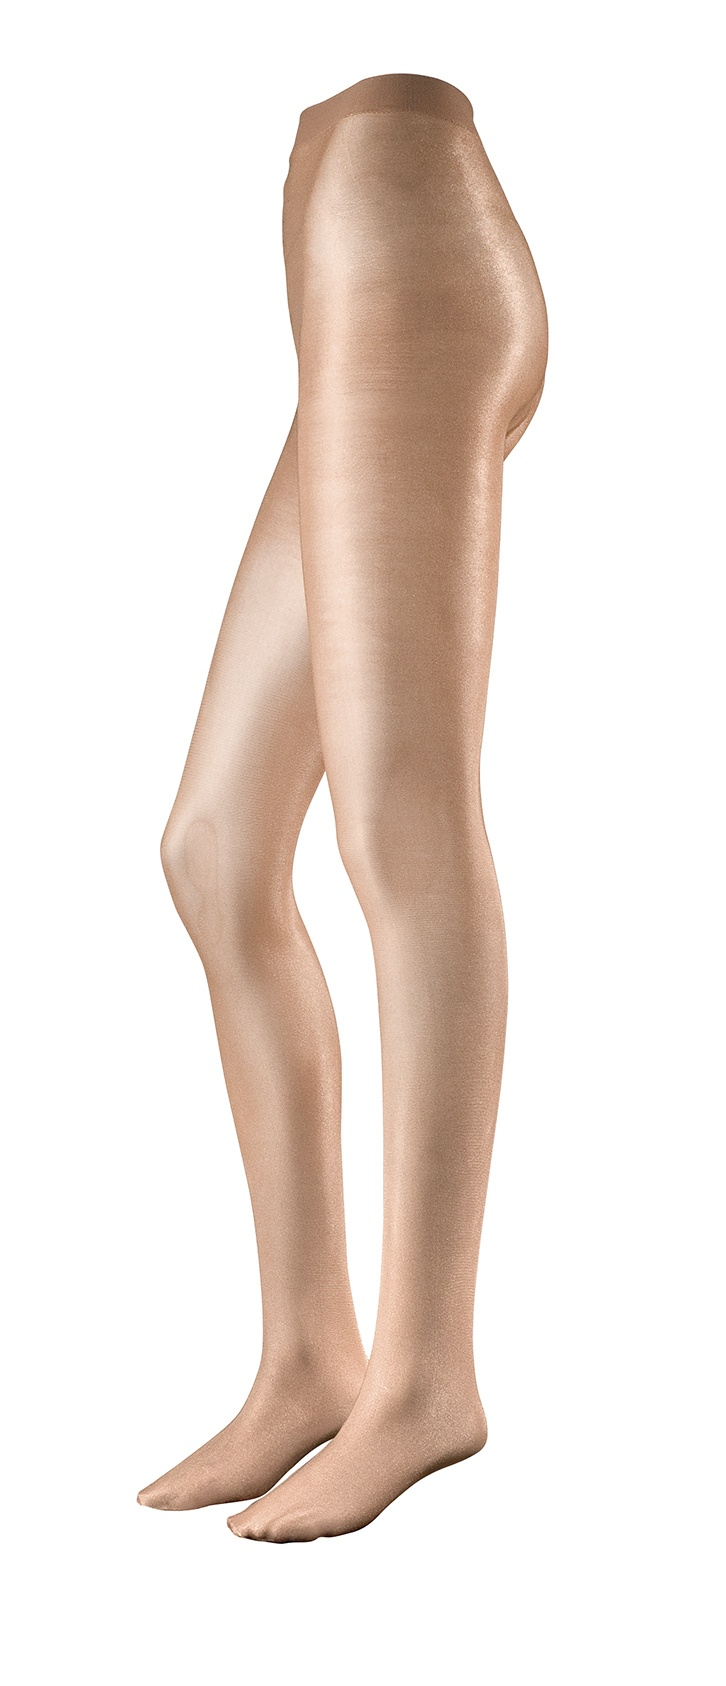 1780388bf Papillon tights extra shiny white ladies - Internet-Sport Casuals